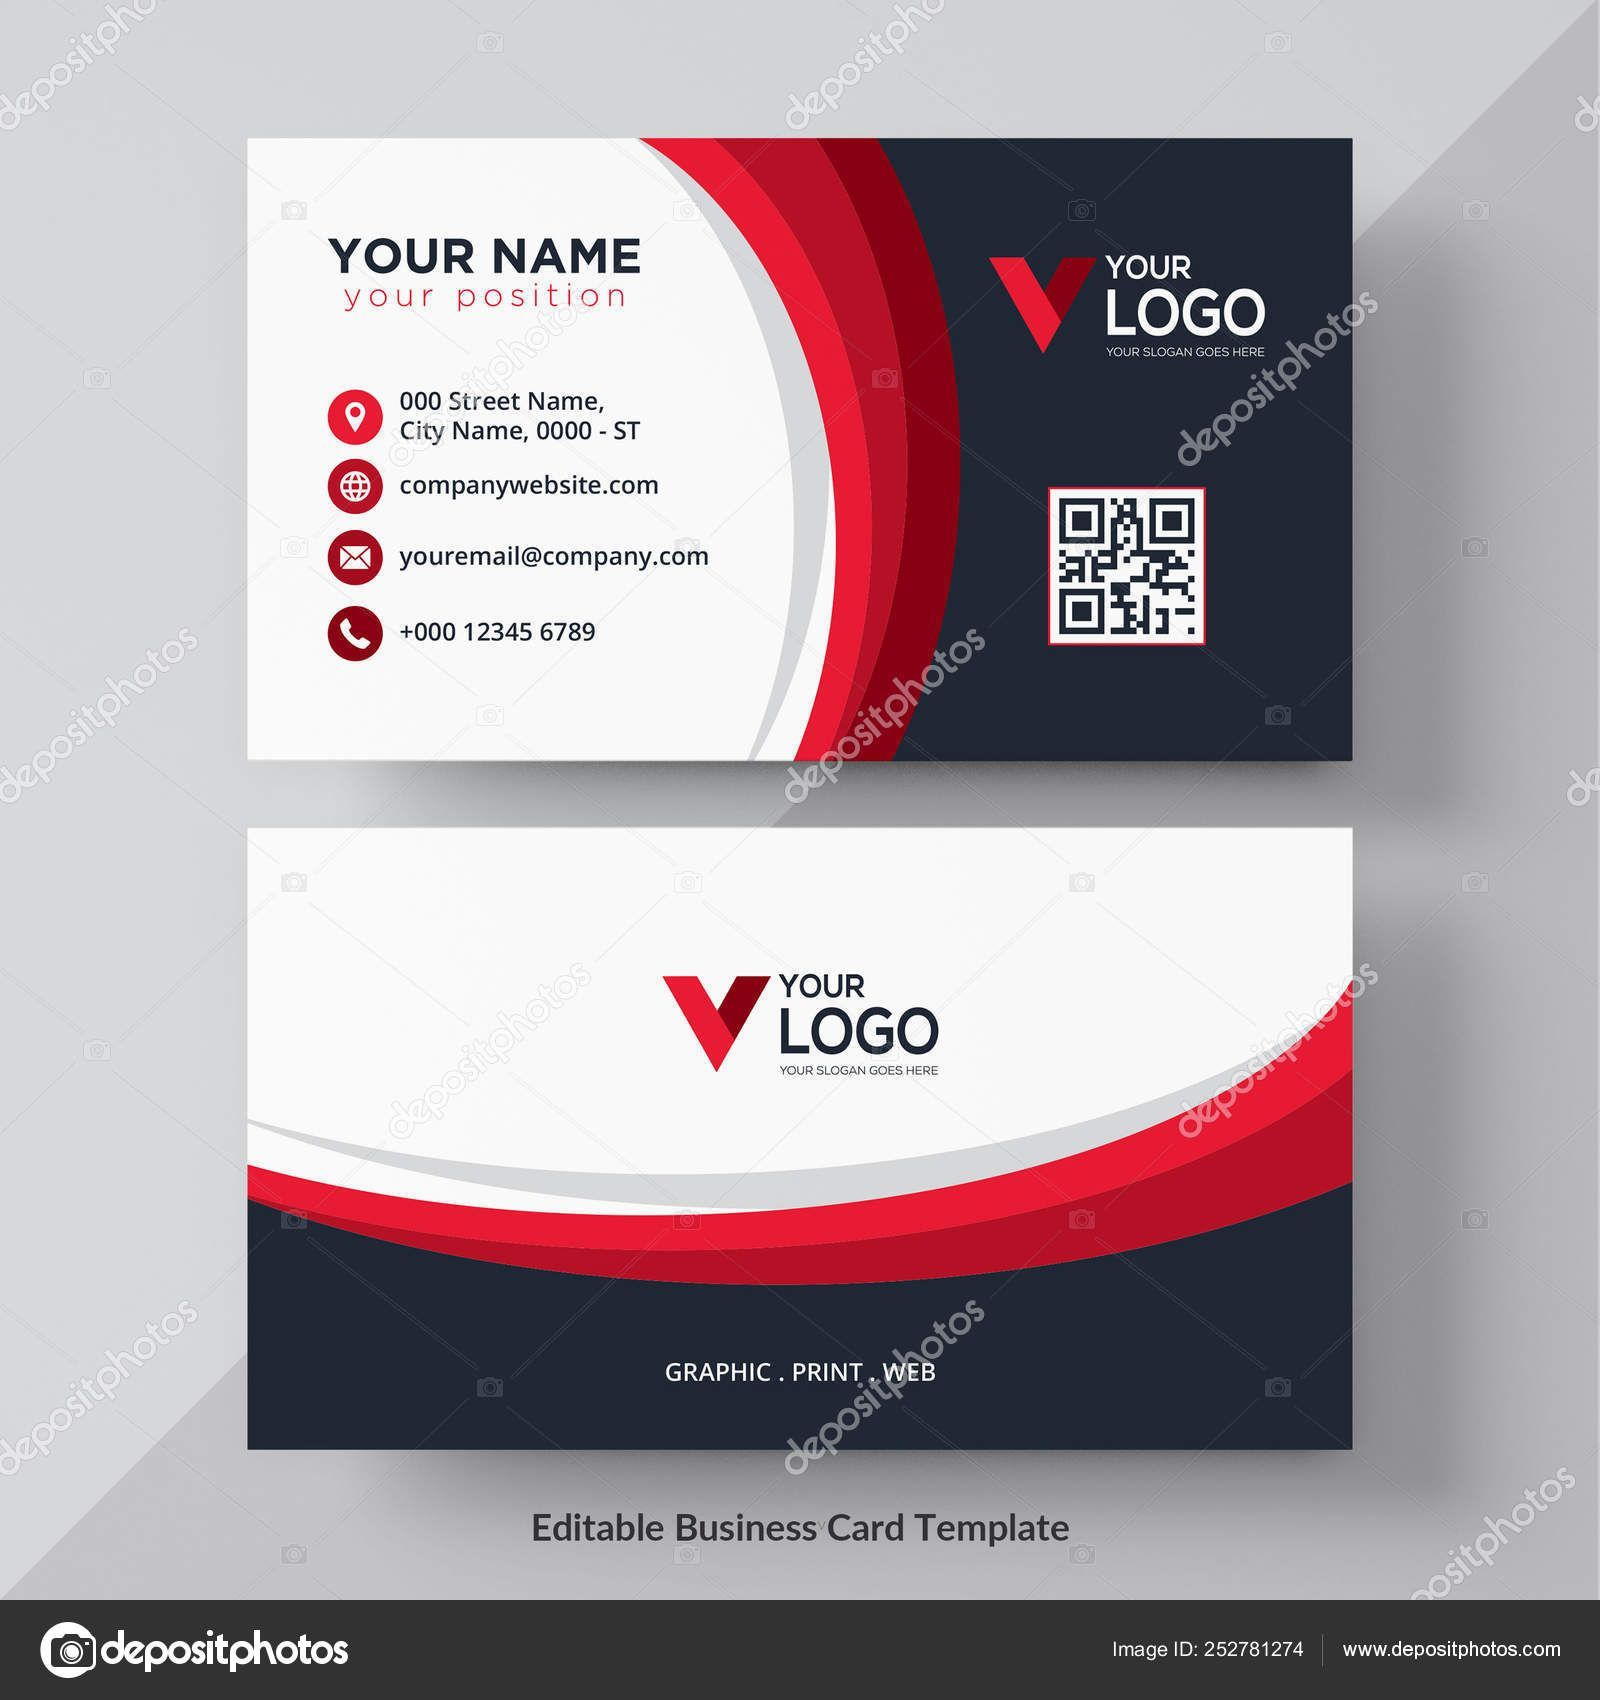 Creative Name Card Template In 2021 Business Cards Creative Name Card Design Creative Names